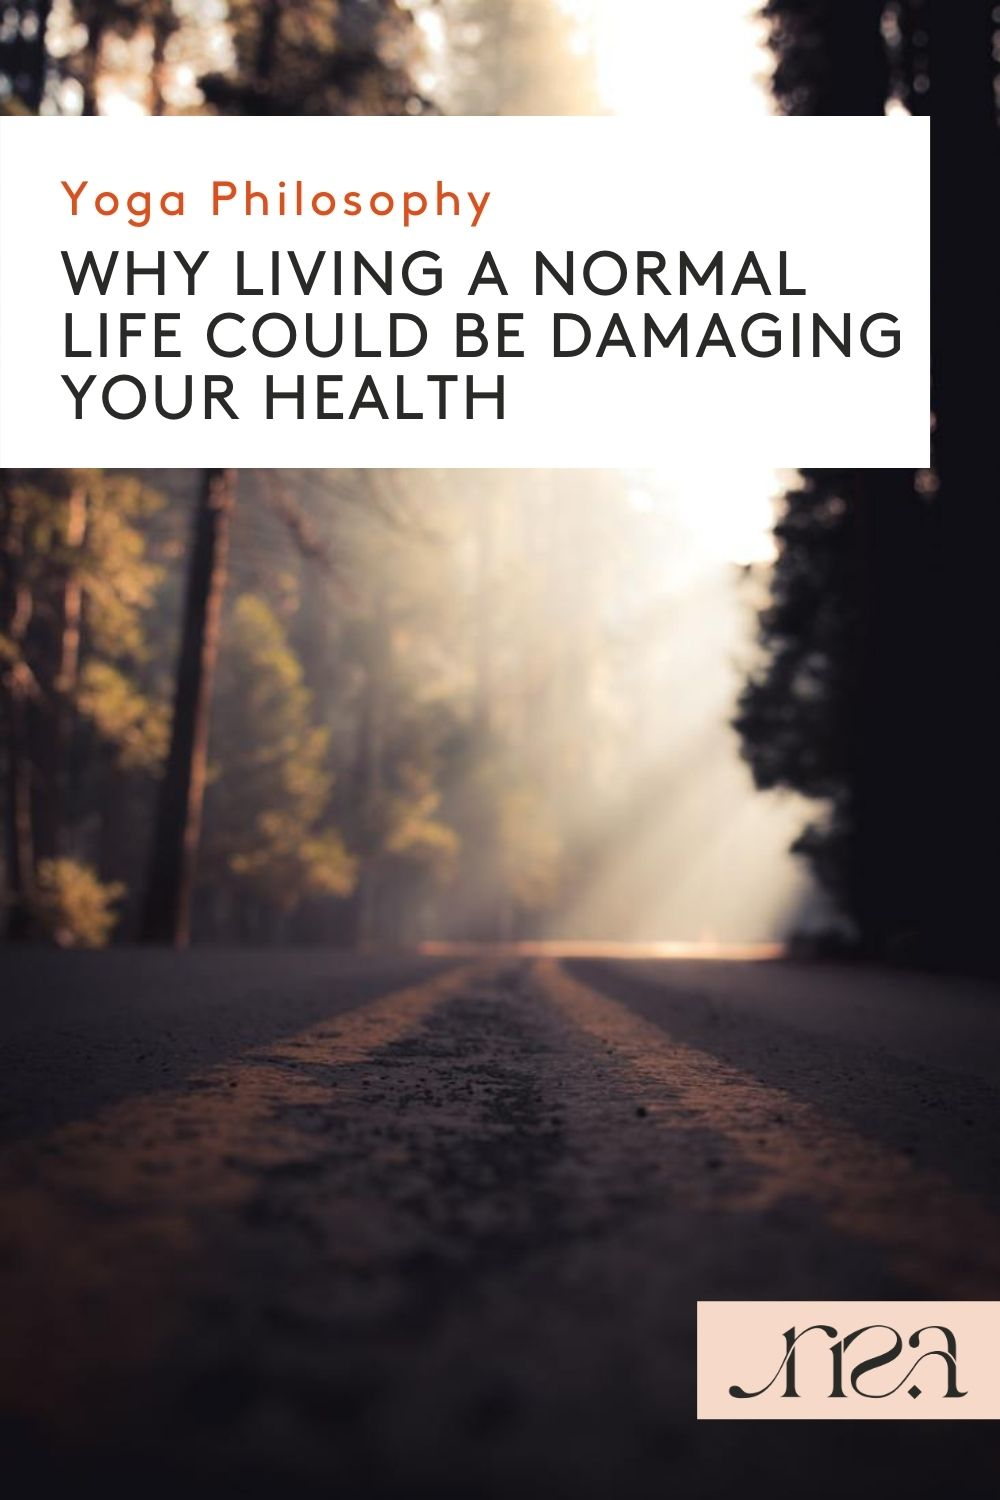 Yoga Philosophy - Ayurveda Lifestyle: Why Living a Normal Life Could Be Damaging Your Health